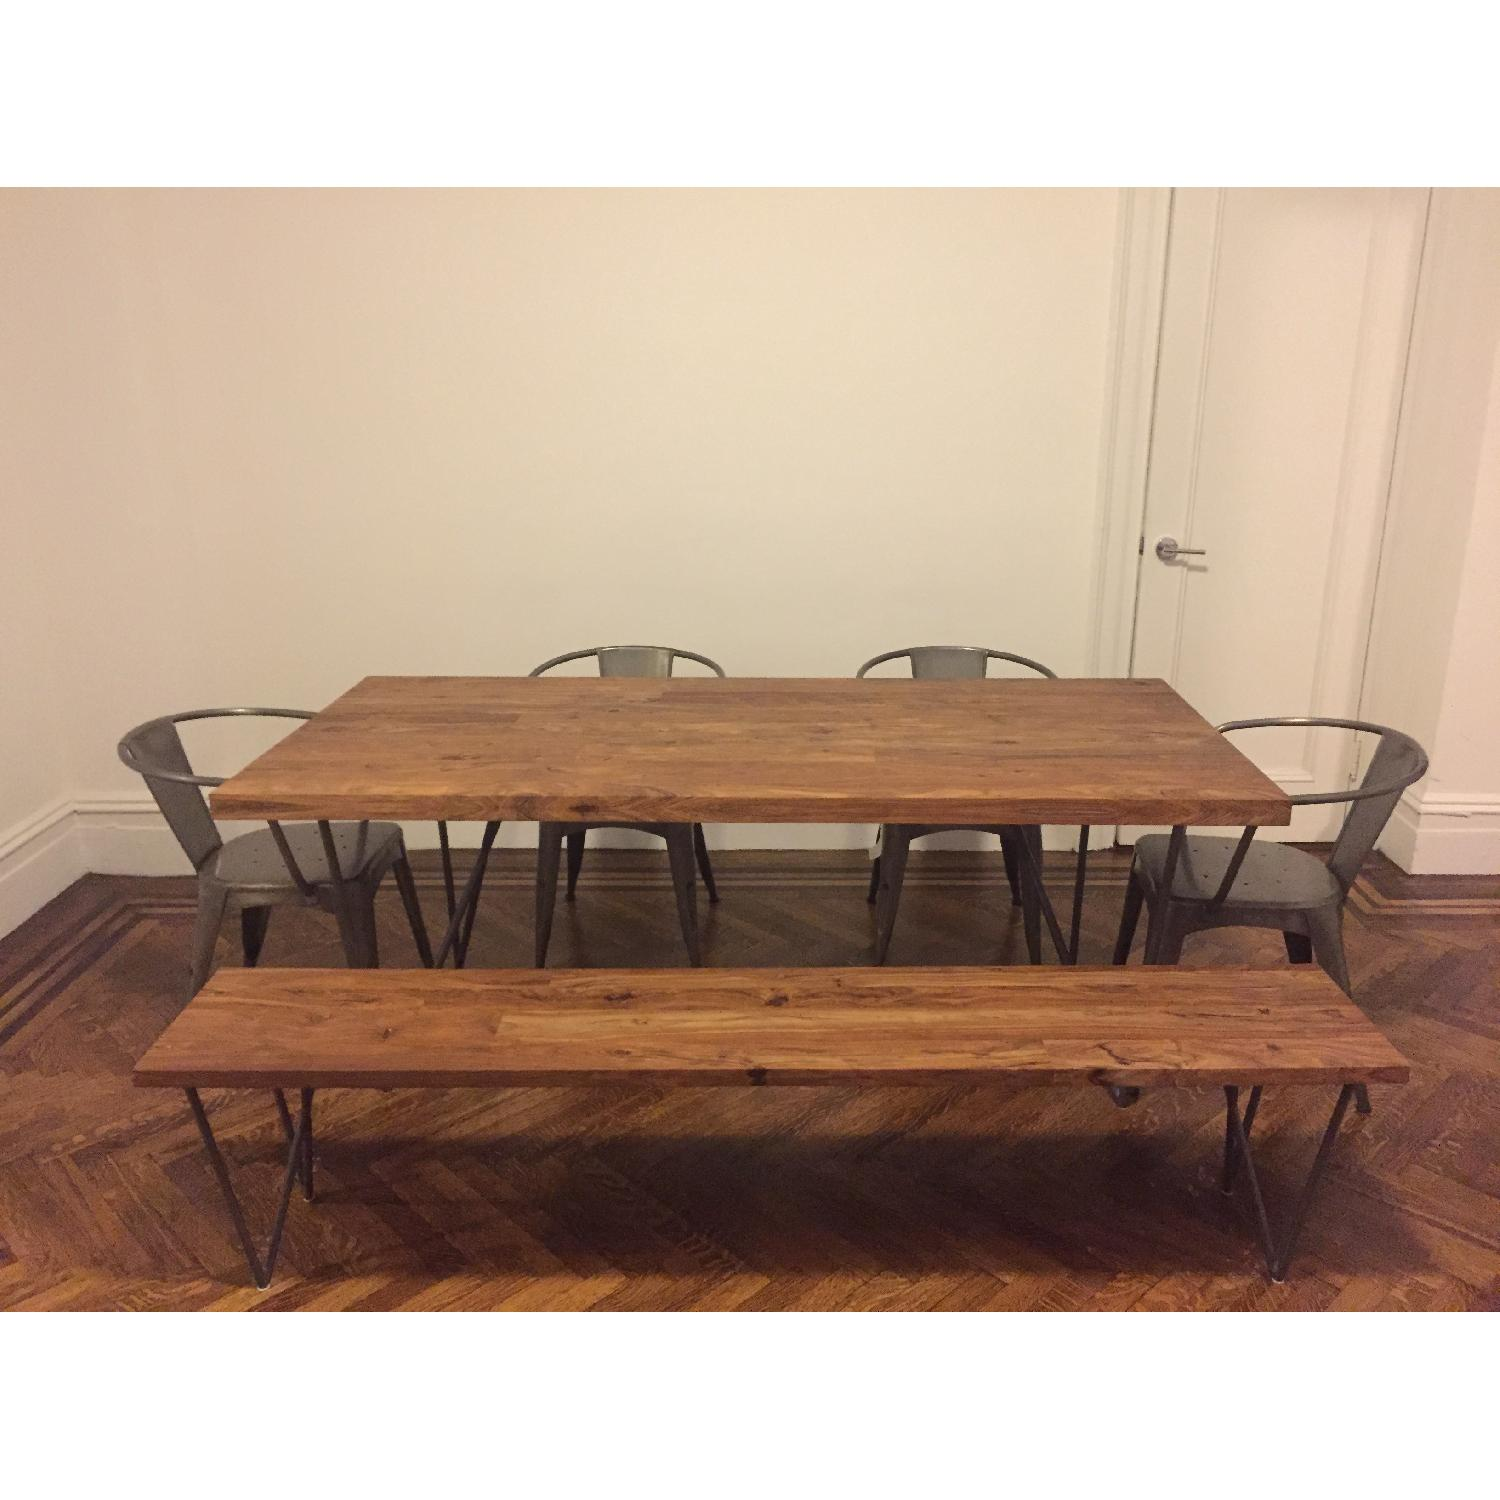 CB2 Dylan Dining Table W 1 Bench 0